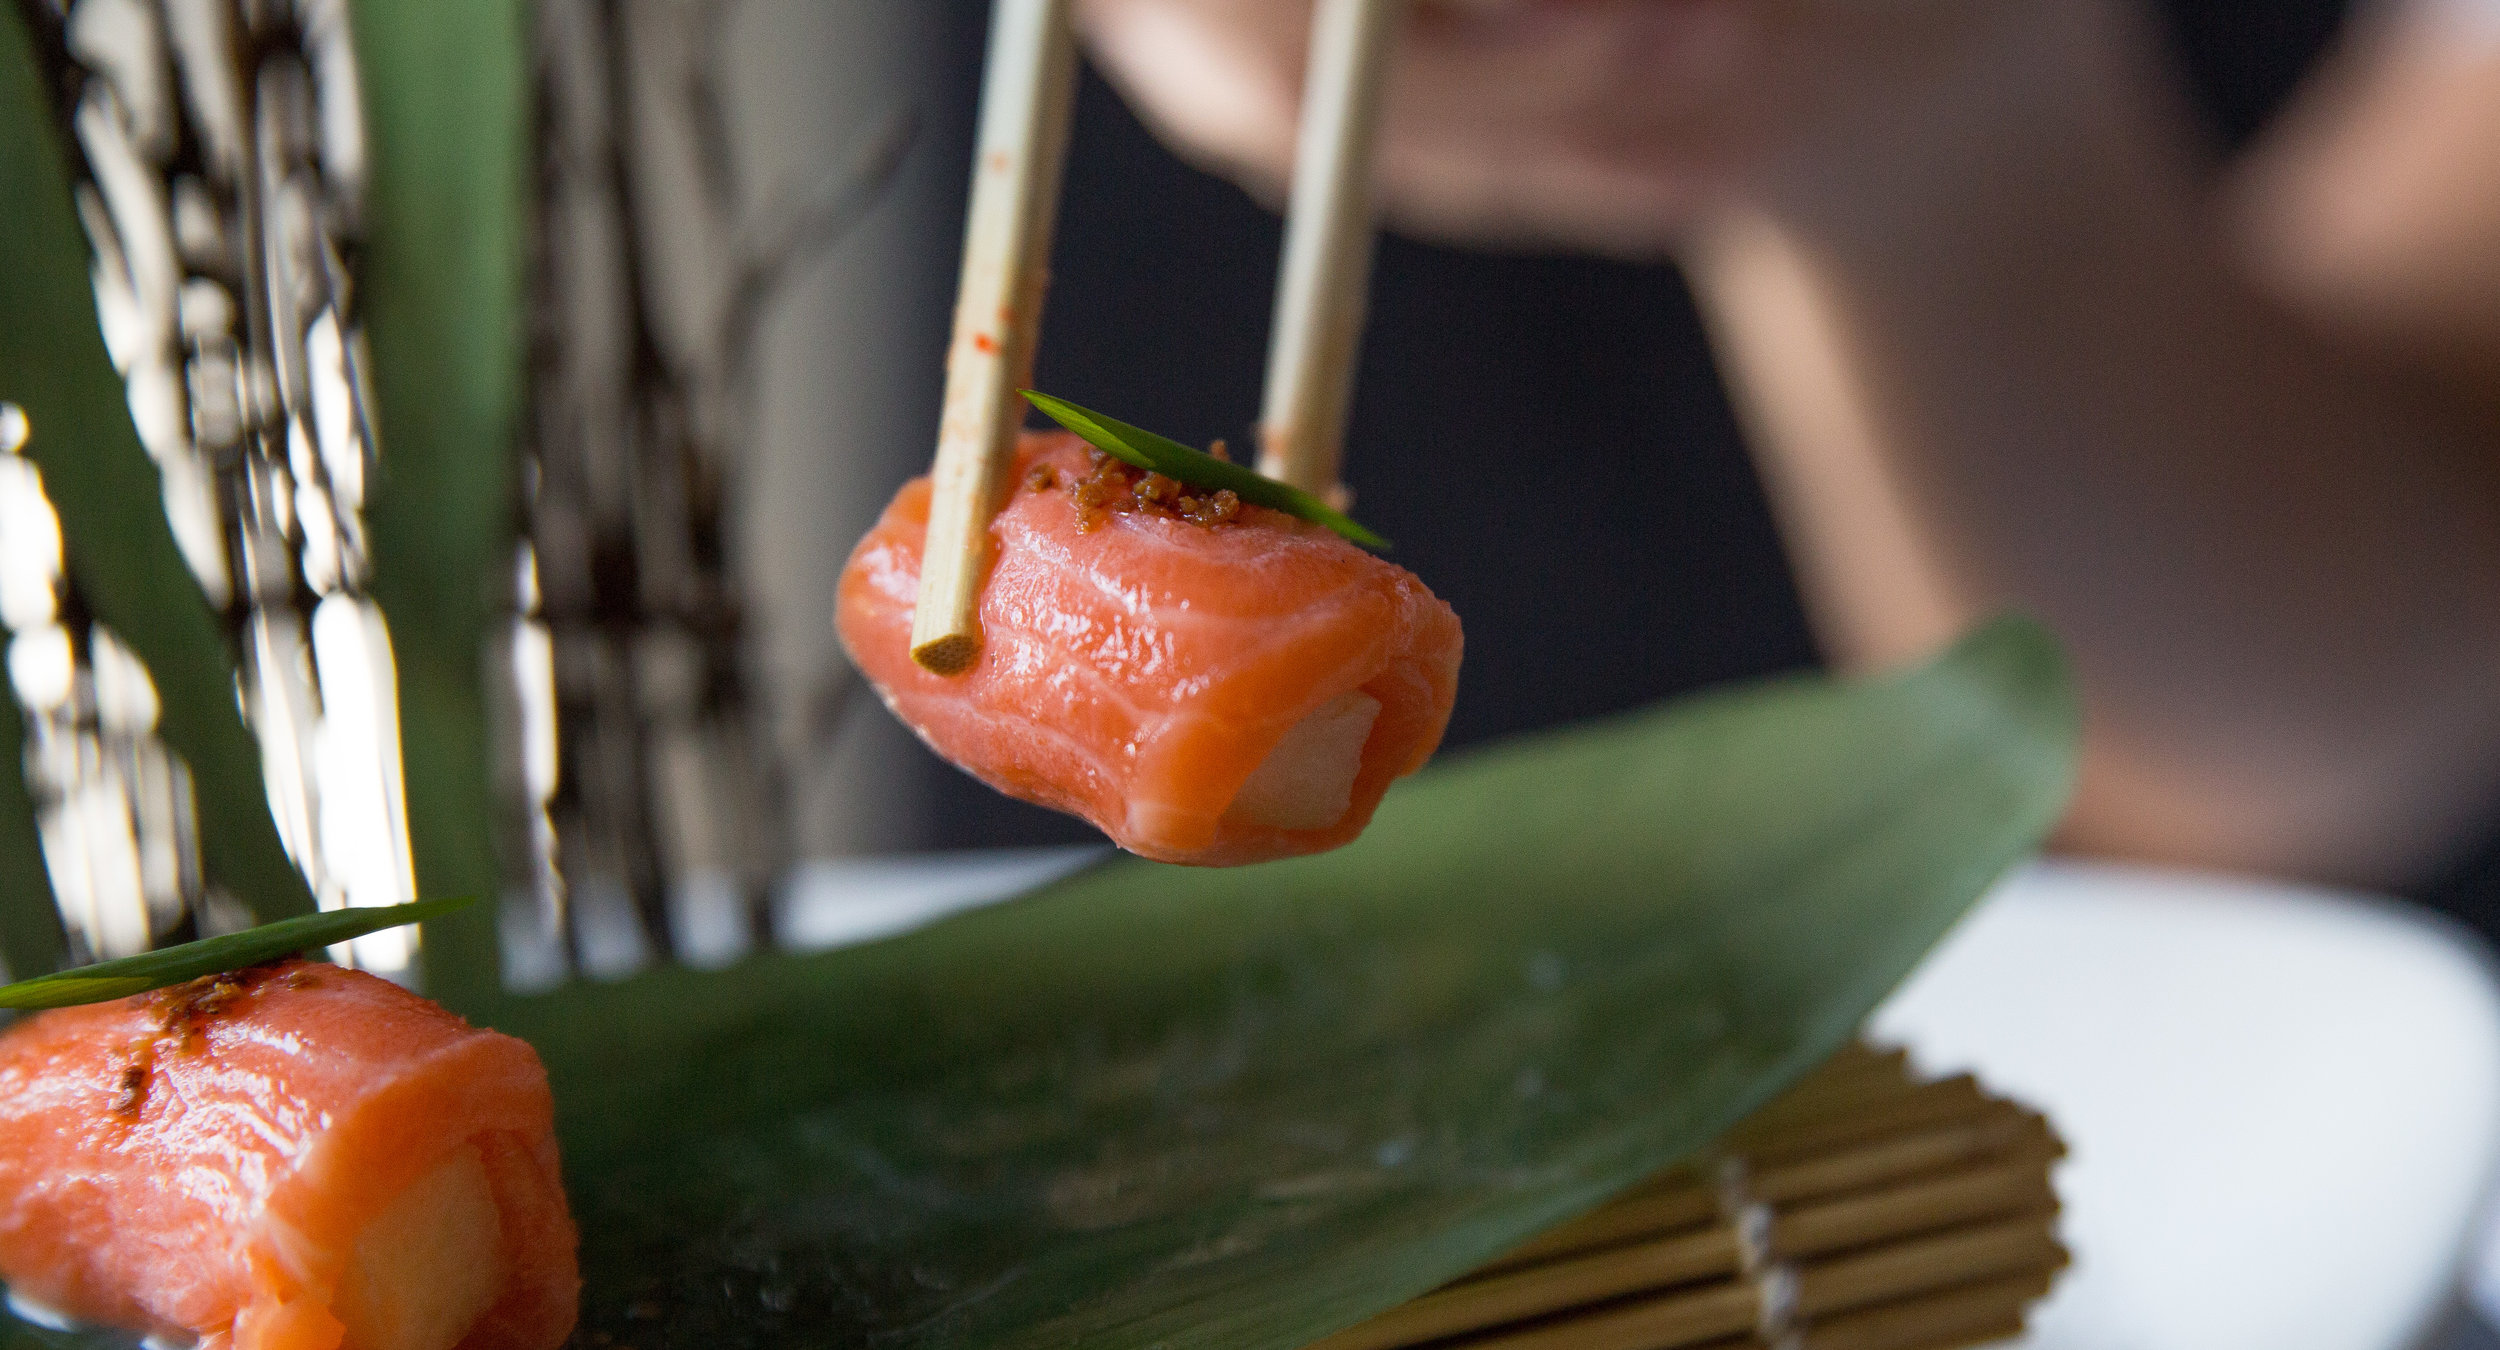 Long Islander News photos/Jano Tantongco  A deliciously decadent appetizer, the King Salmon Nashi ($18) wraps wild salmon around crunchy Asian pears and is topped with truffle salt, dried miso, yuzu citrus sauce.